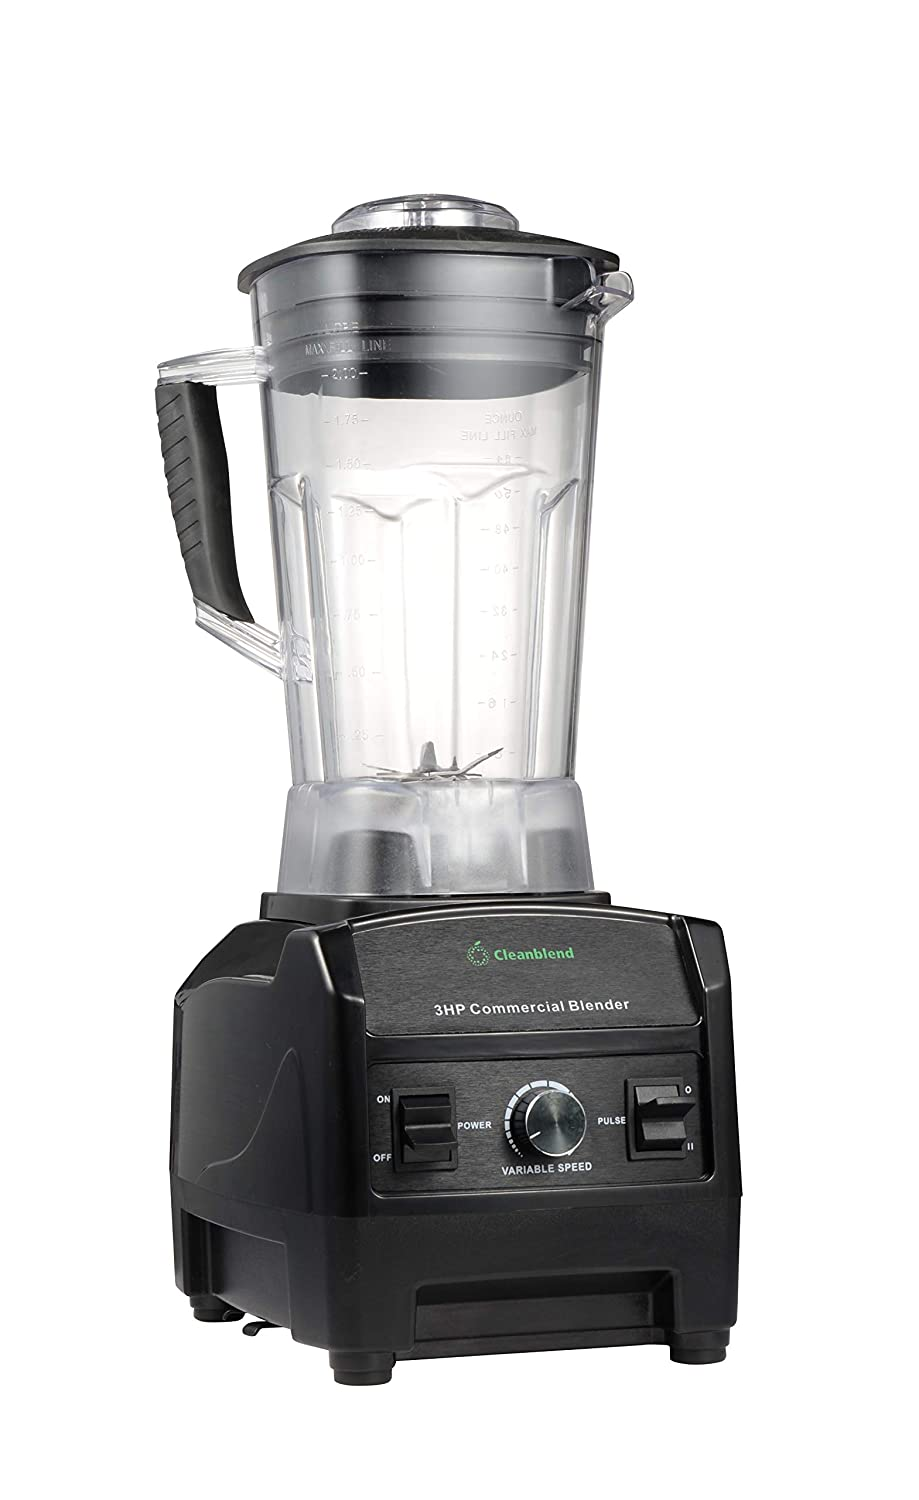 Top 10 Best Blender for Smoothies with Ice - Buyer's Guide 1